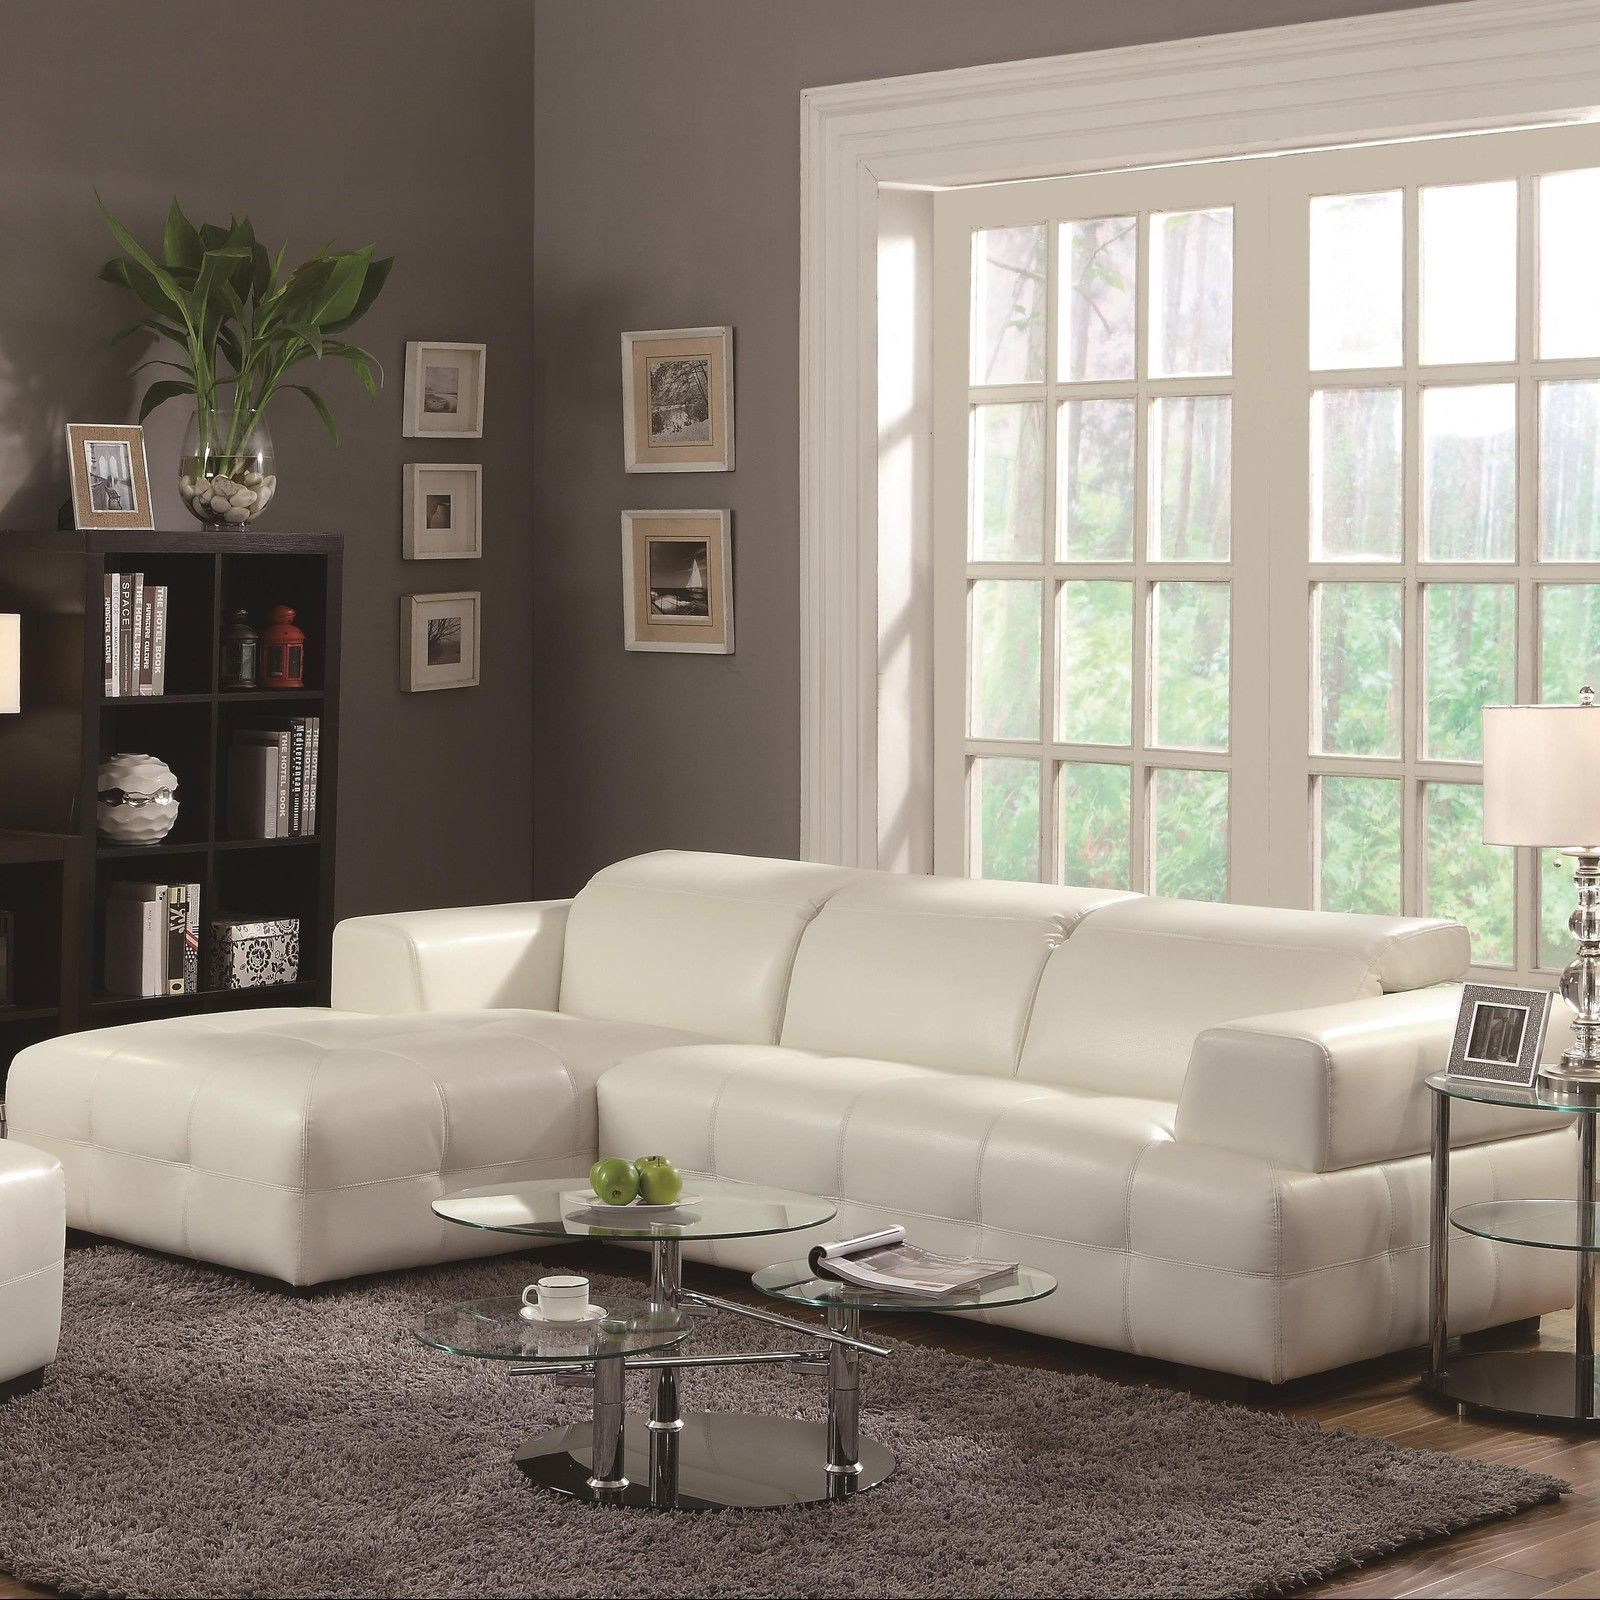 Darby Contemporary Sectional Sofa with Wide Chaise and Adjustable